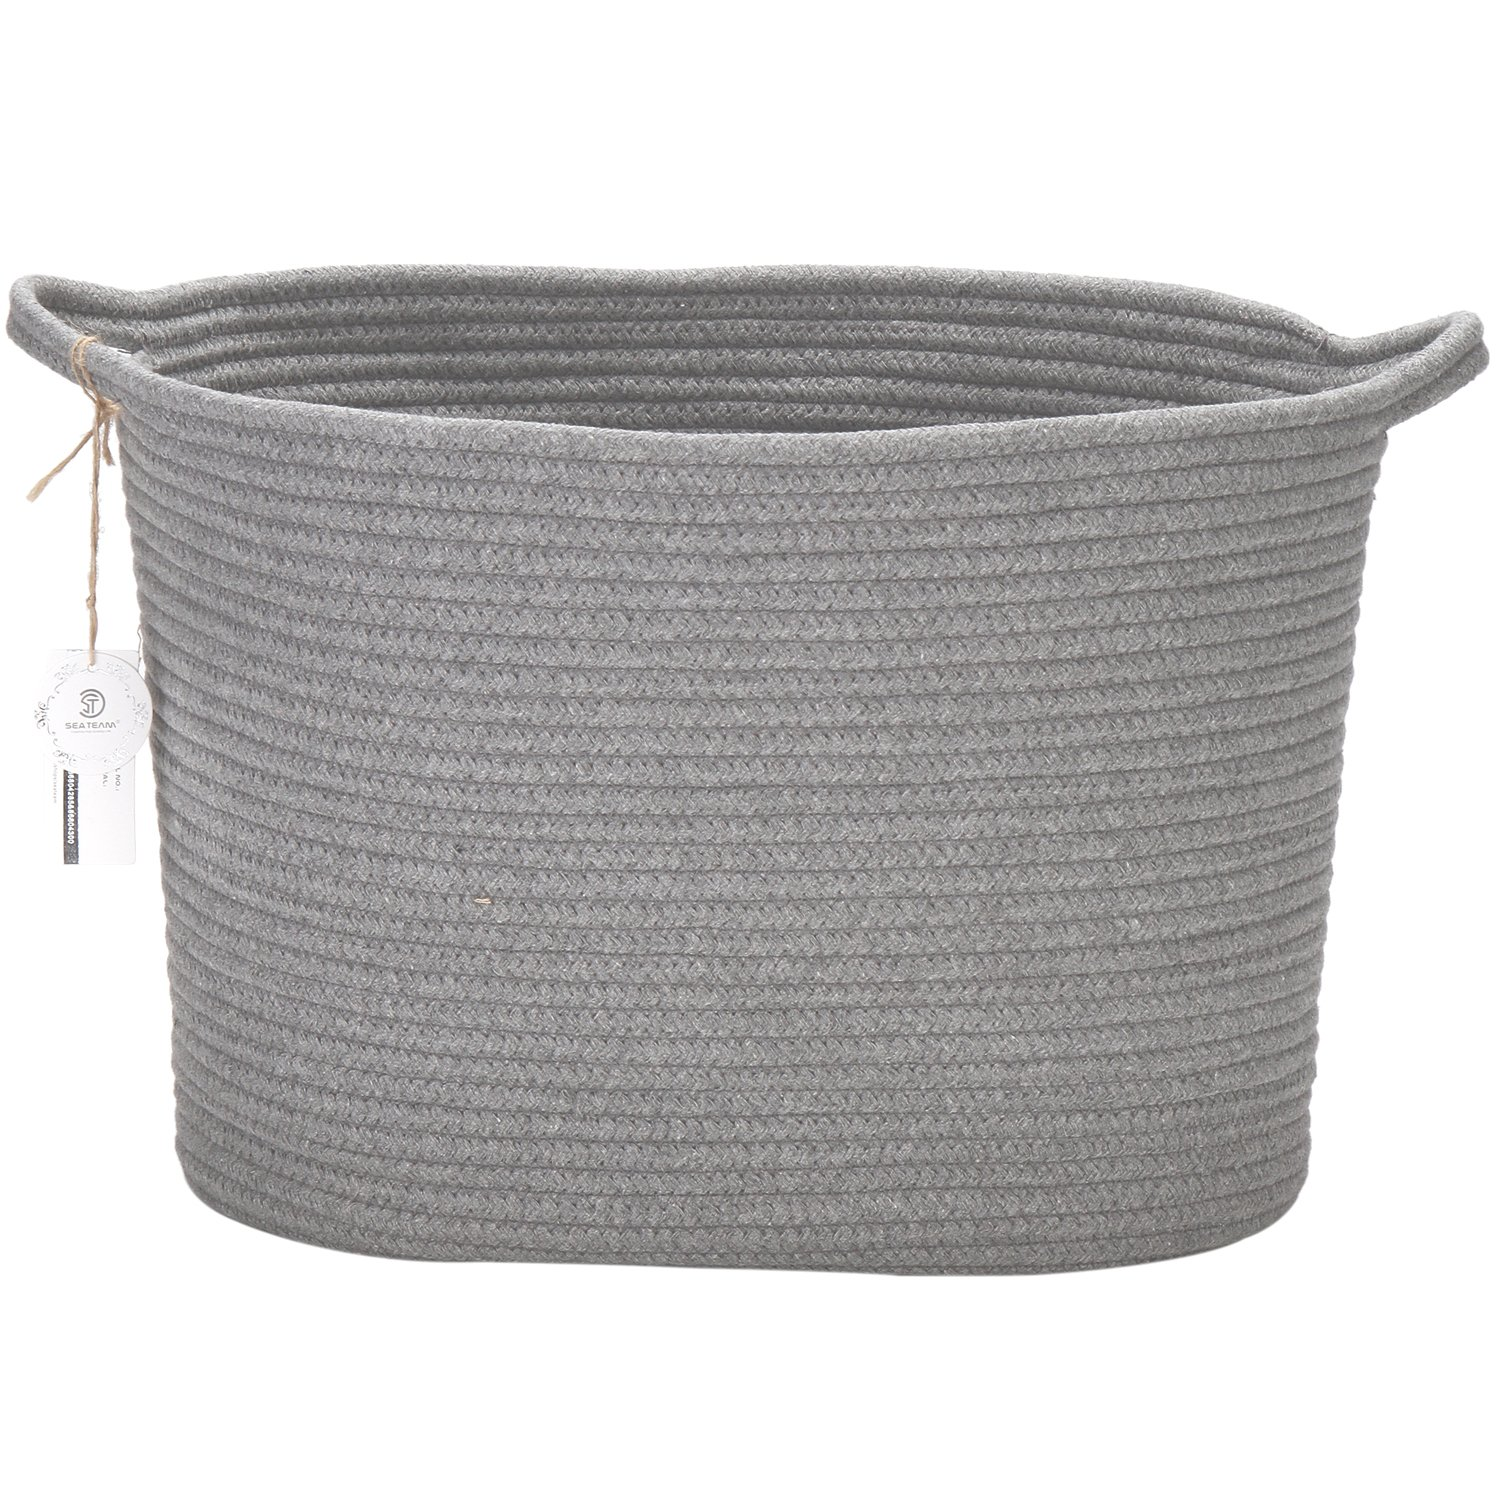 Sea Team 14  x 9  x 11  Oval Natural Cotton Thread Woven Rope  sc 1 st  Amazon.com : woven storage bin  - Aquiesqueretaro.Com